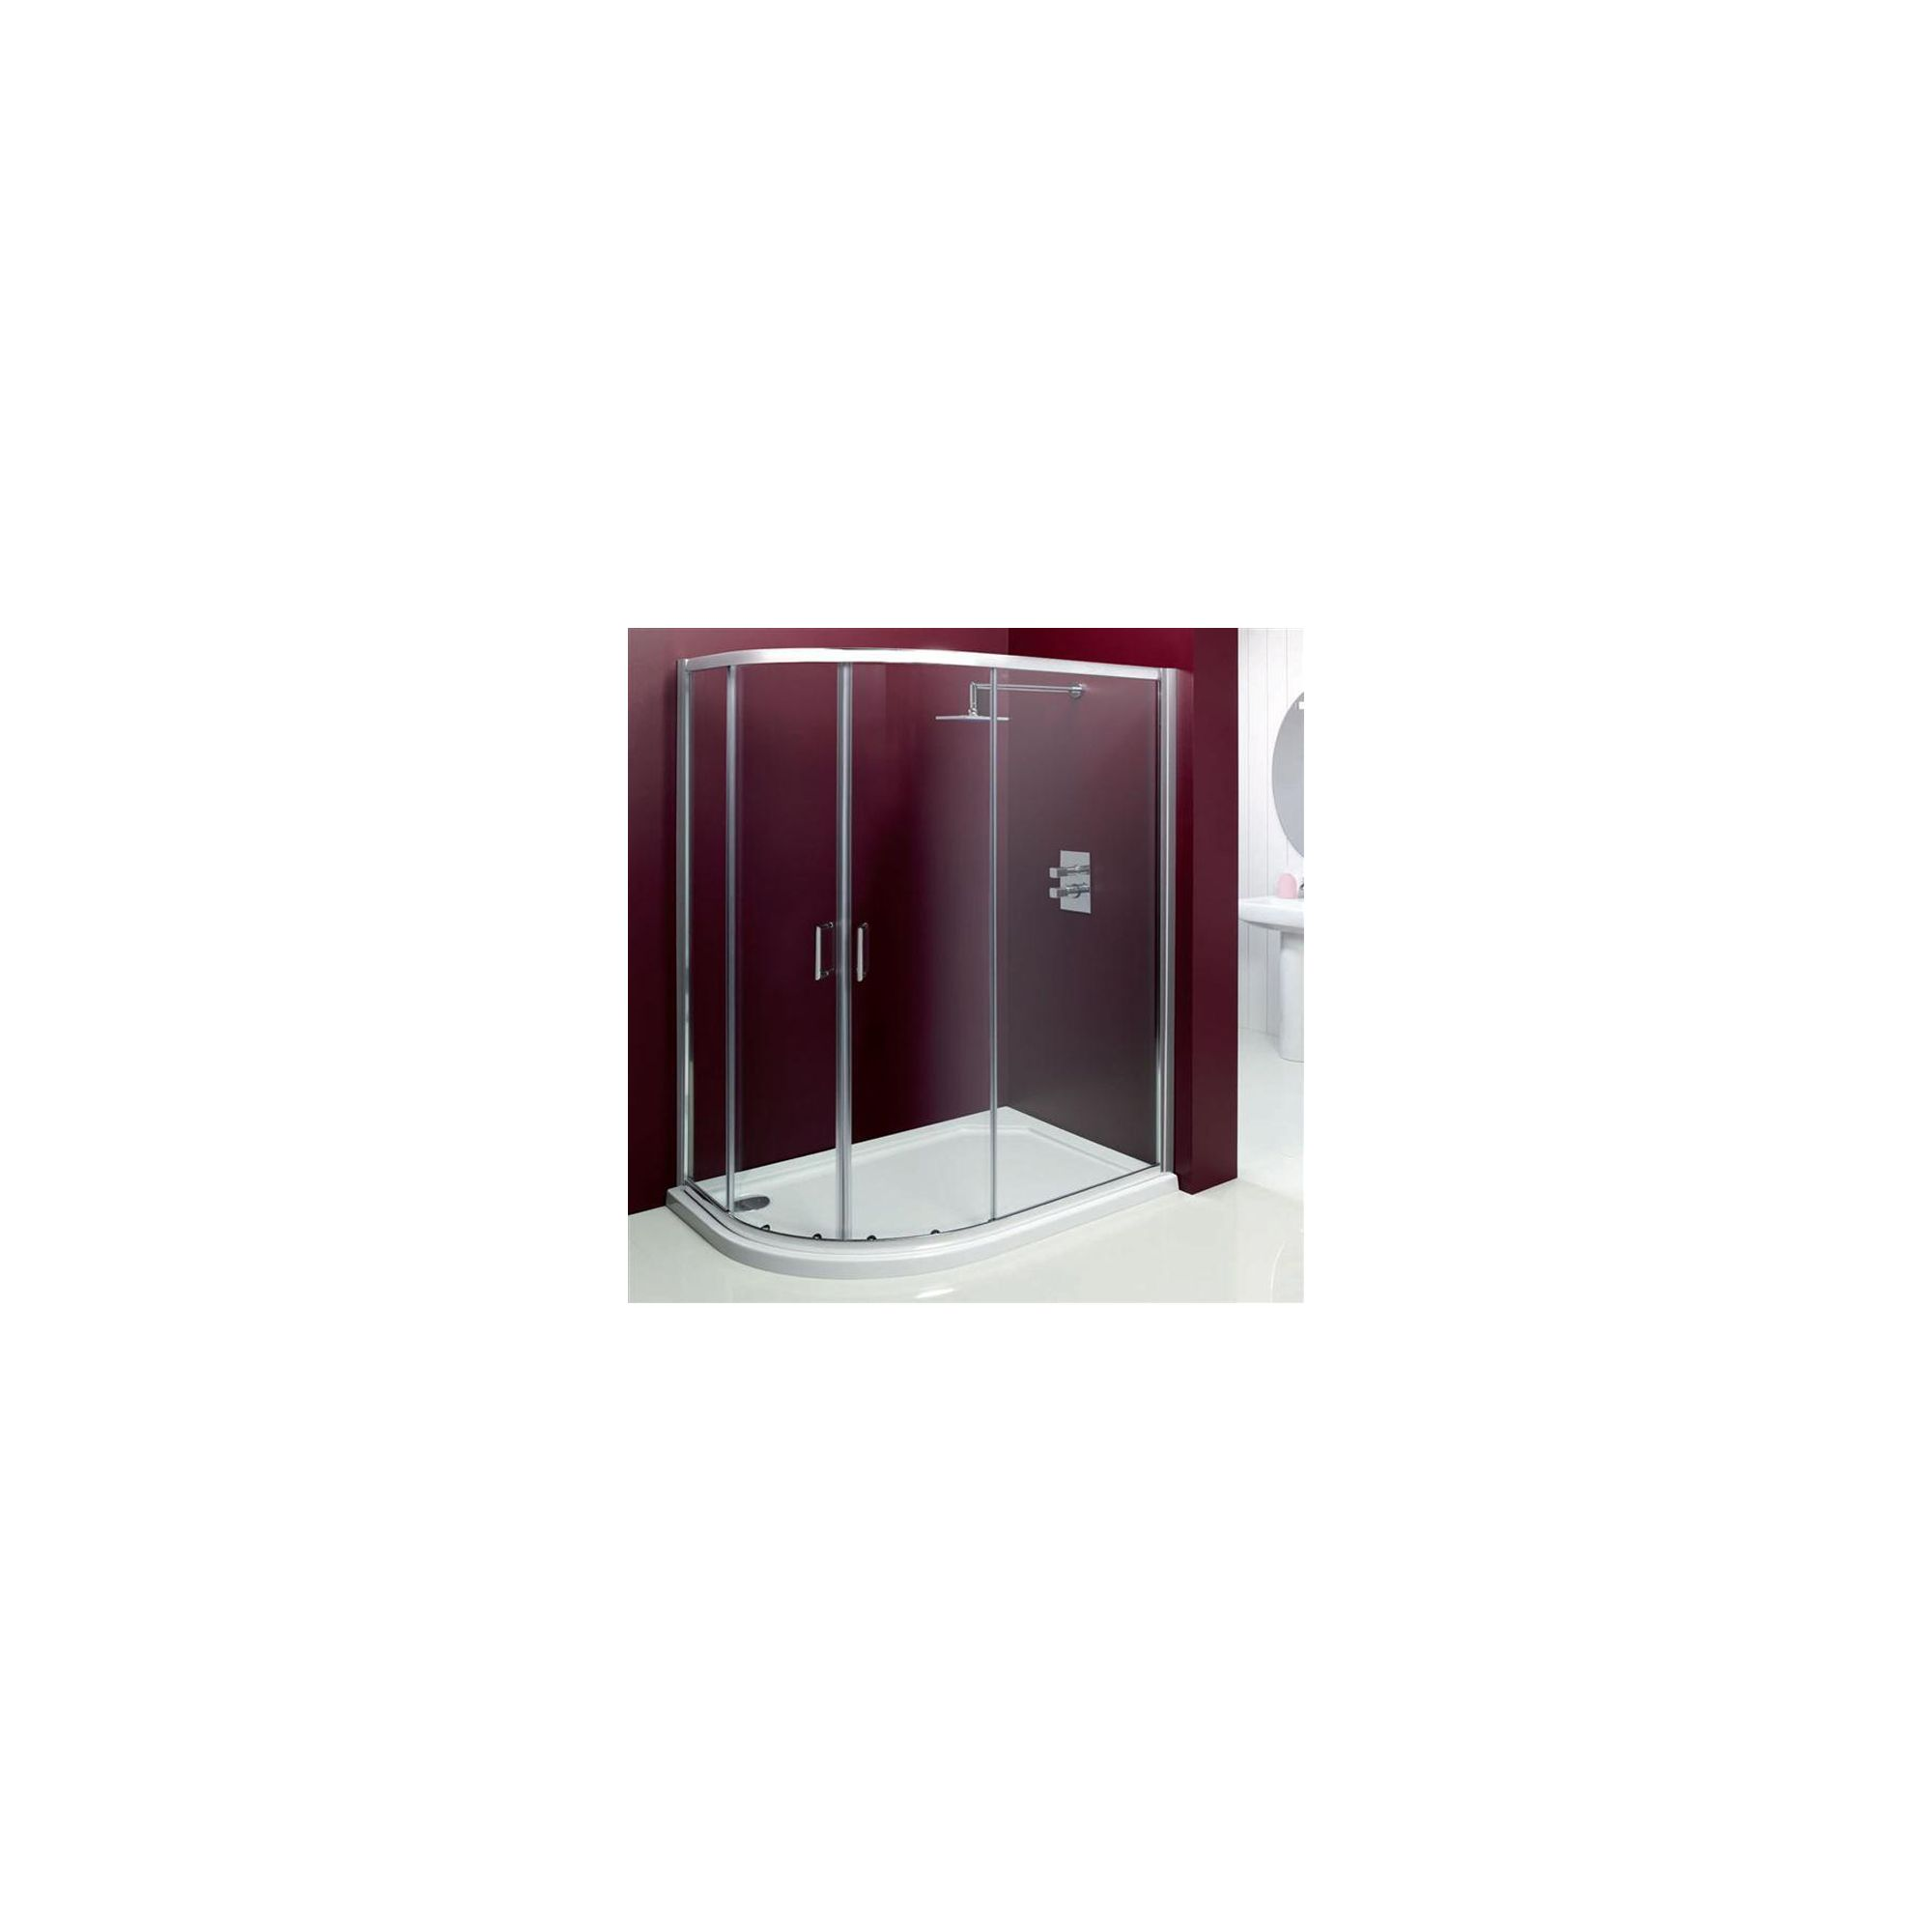 Merlyn Vivid Entree Offset Quadrant Shower Door, 1200mm x 800mm, 6mm Glass at Tesco Direct